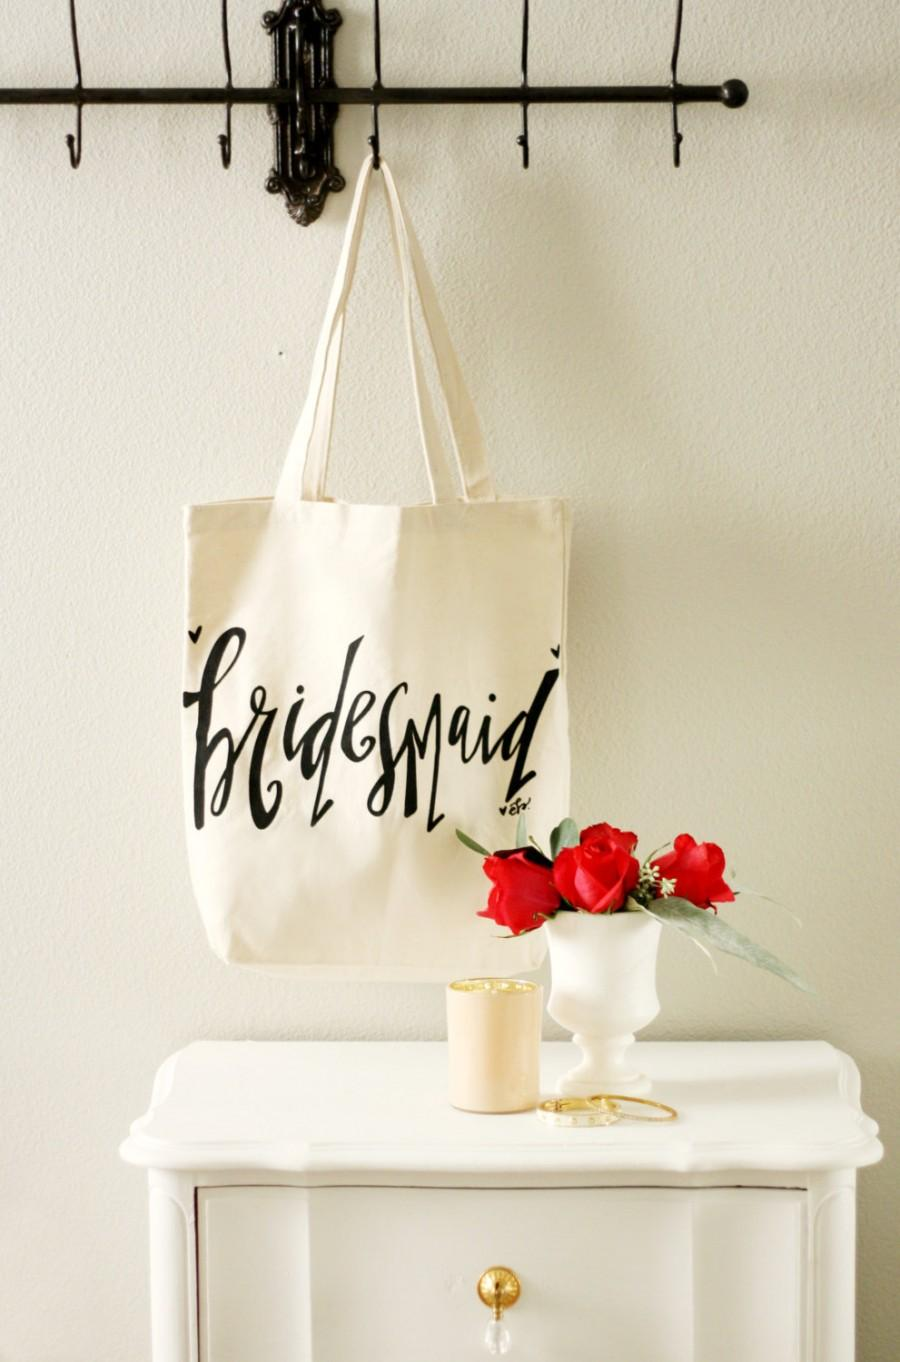 Bridesmaid Tote Bags - Bridesmaid Gift, Maid Of Honor Gift, Favor ...